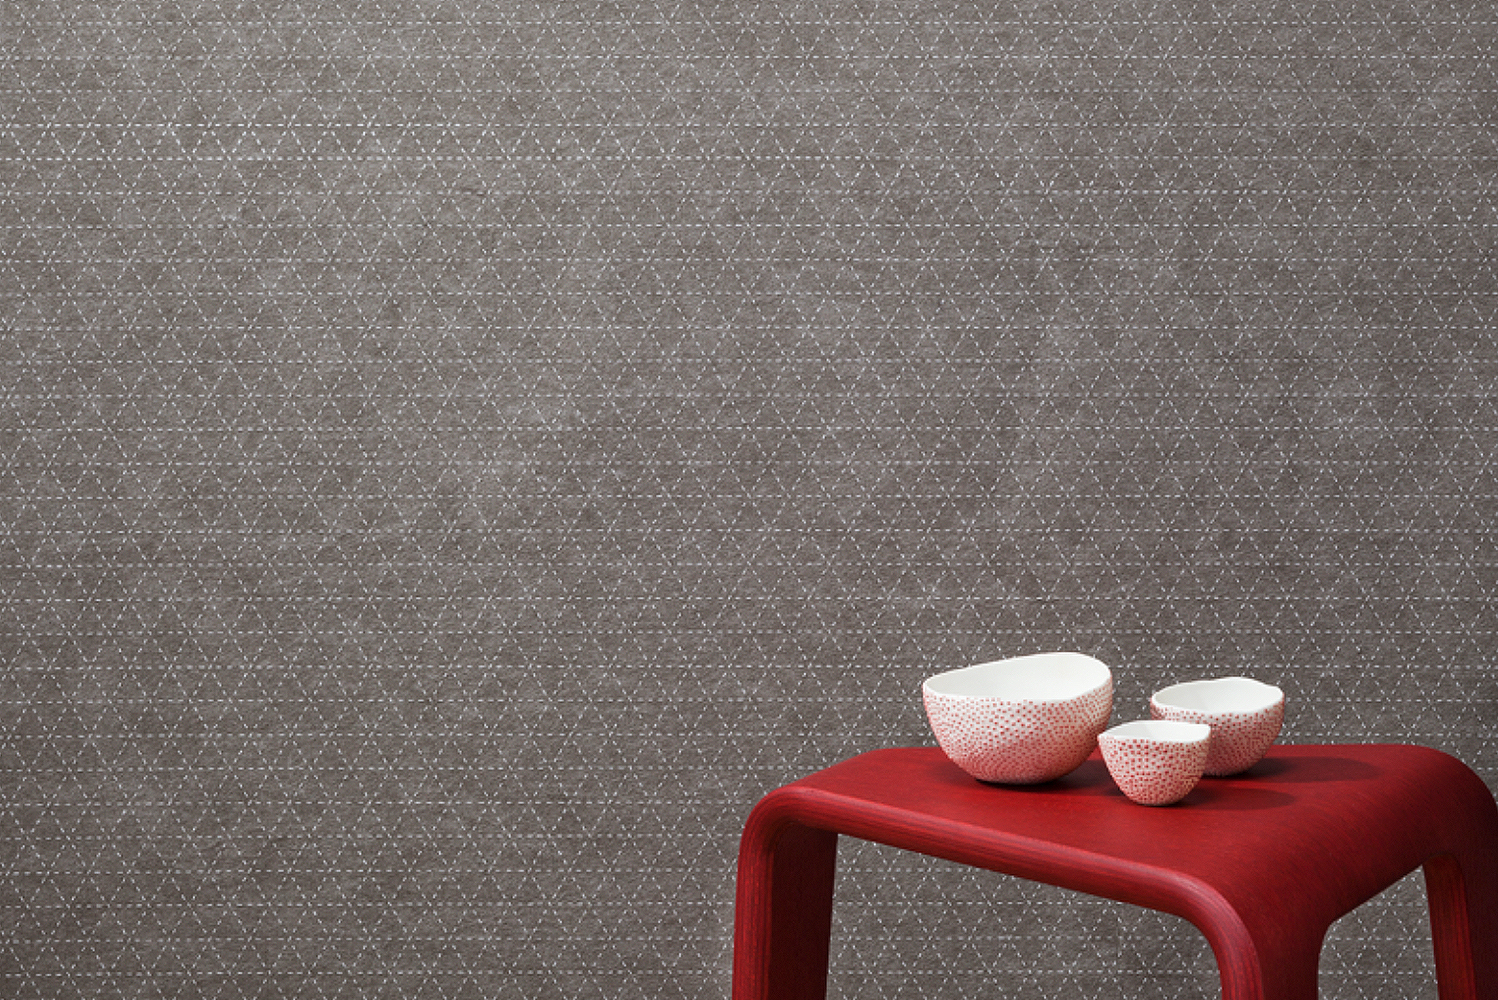 Kirei launched the EchoPanel Mura fabric collection.